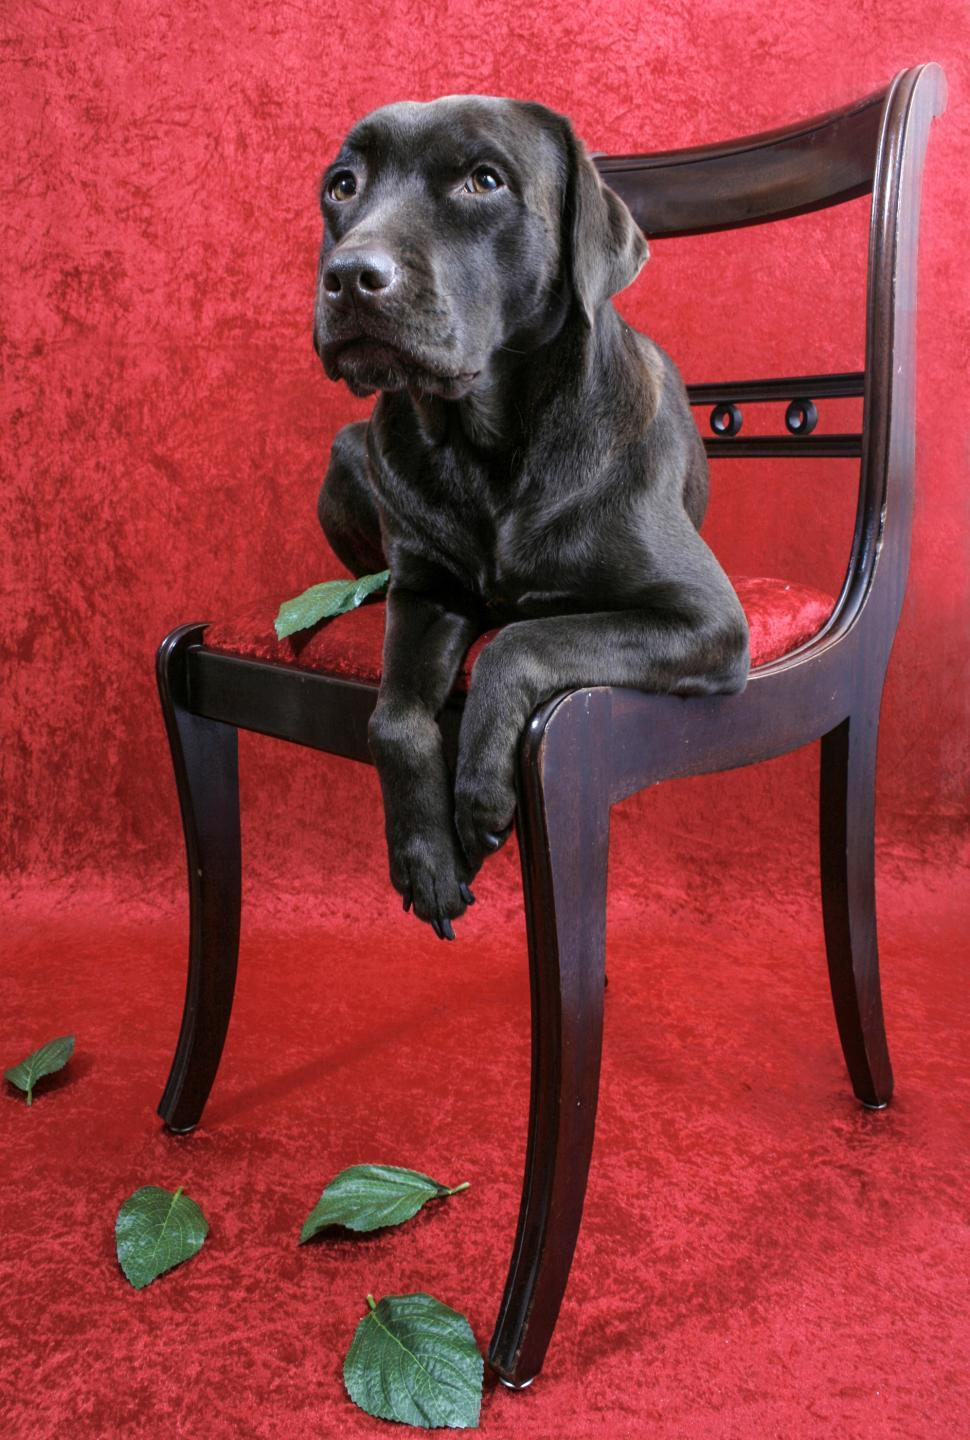 Download Free Stock HD Photo of Labrador dog on chair Online